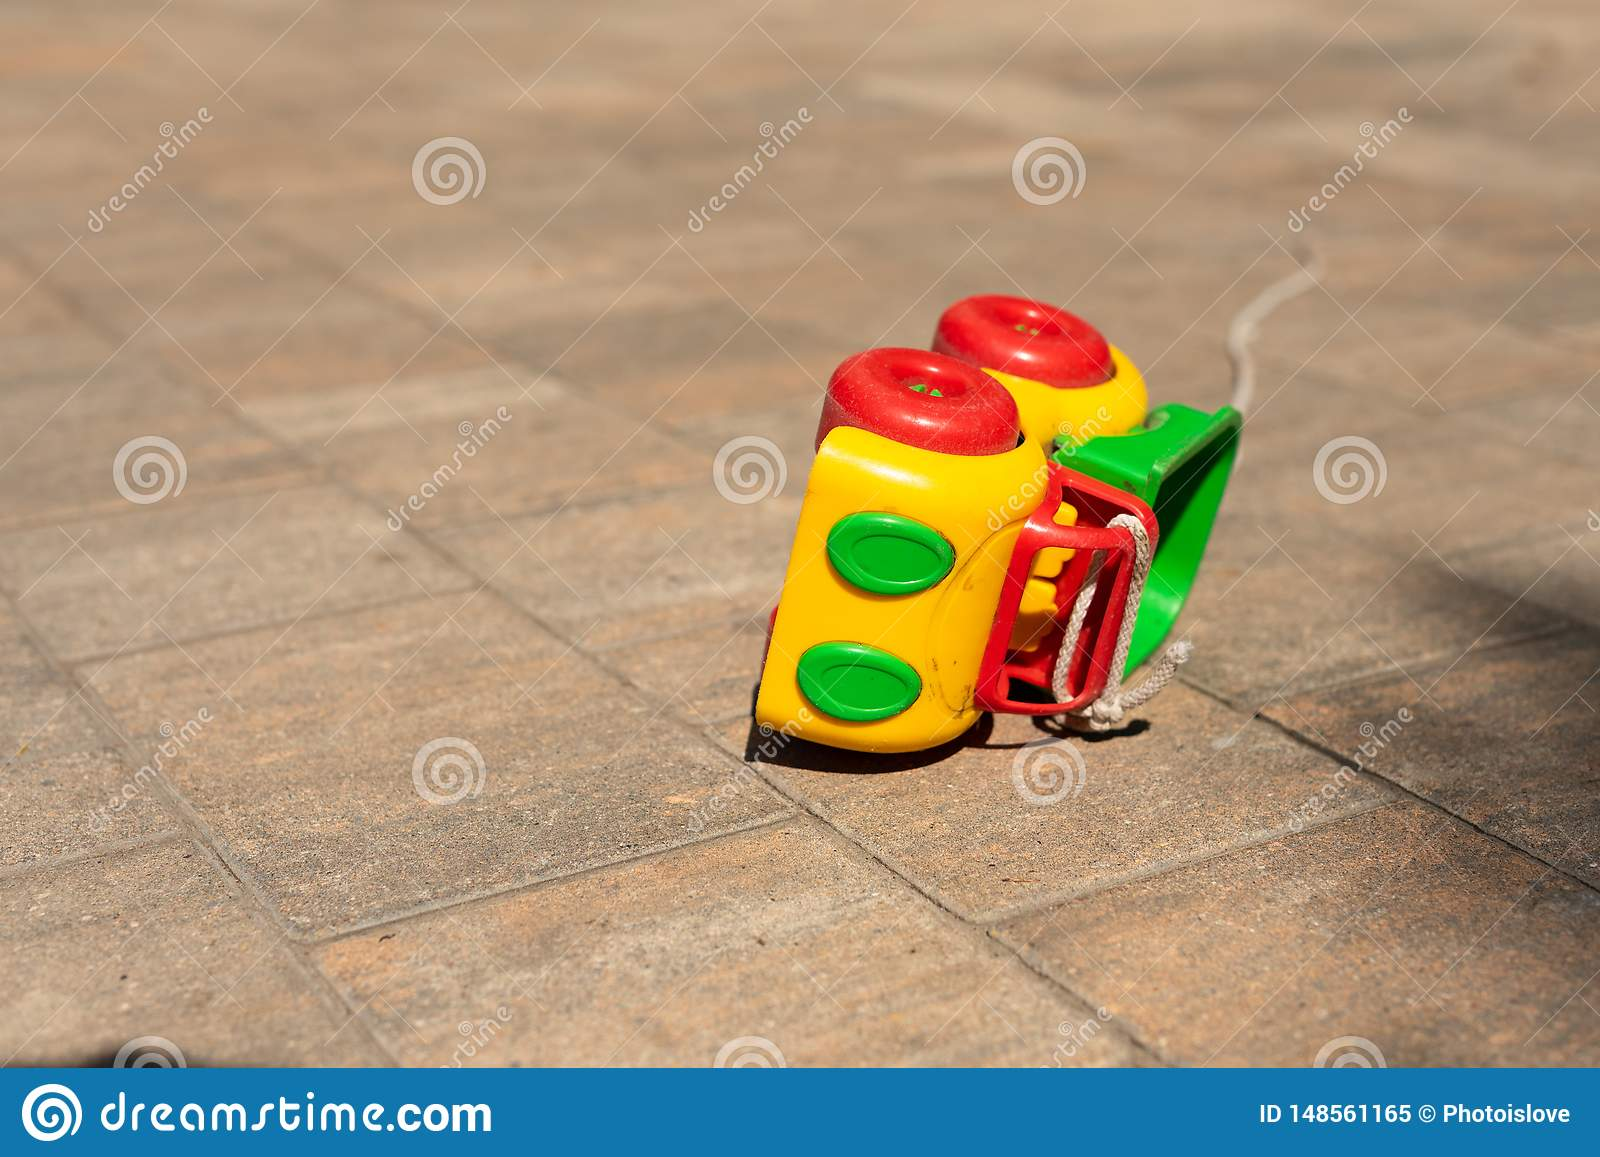 Baby kids toy background: toy colored car knocked over on the paving stone.